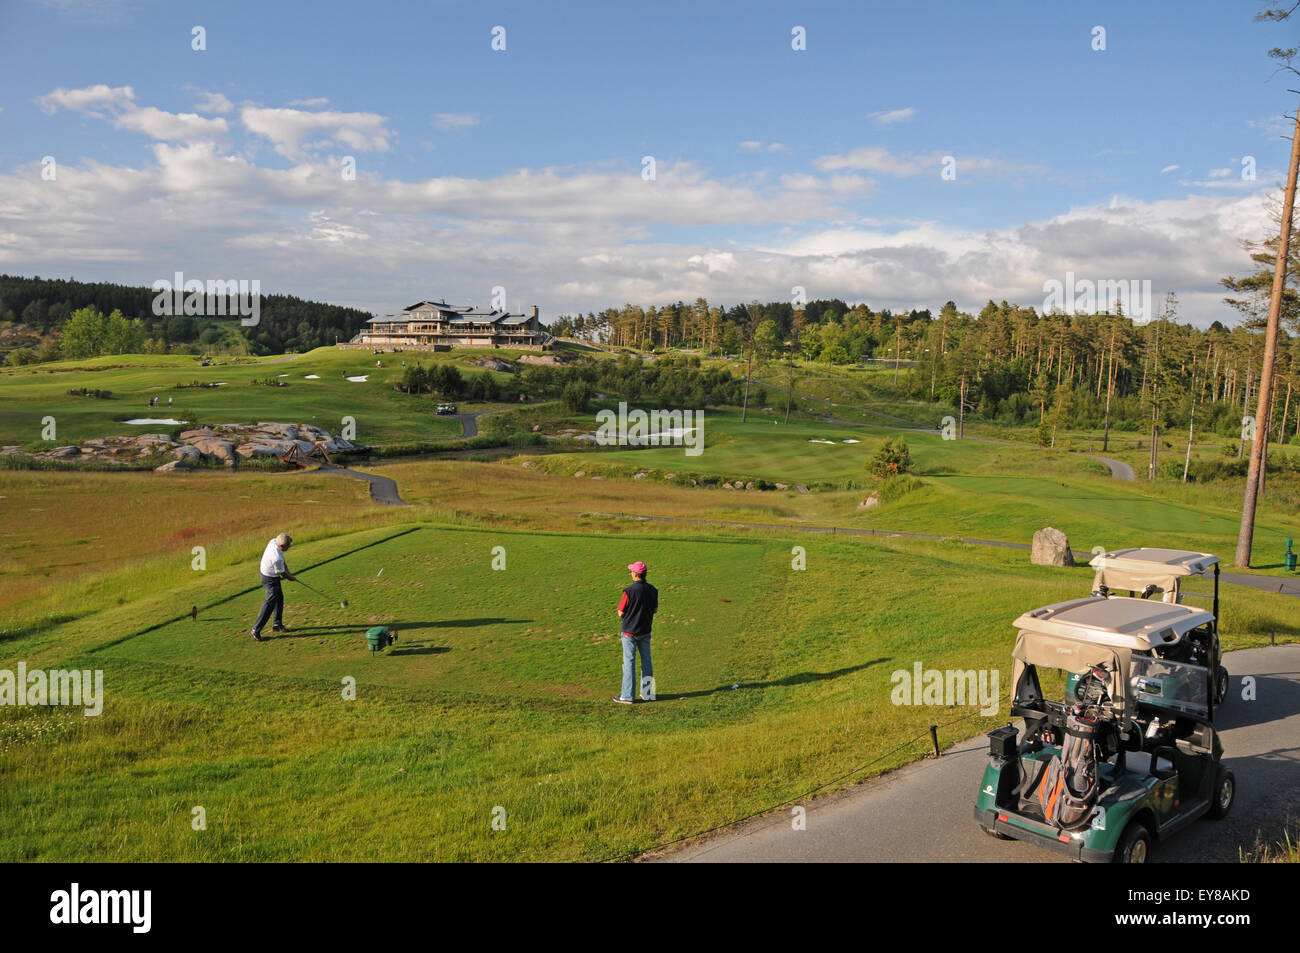 Teeing off at the Hills Golf Club near Gothenburg on the West Coast of Sweden - Stock Image